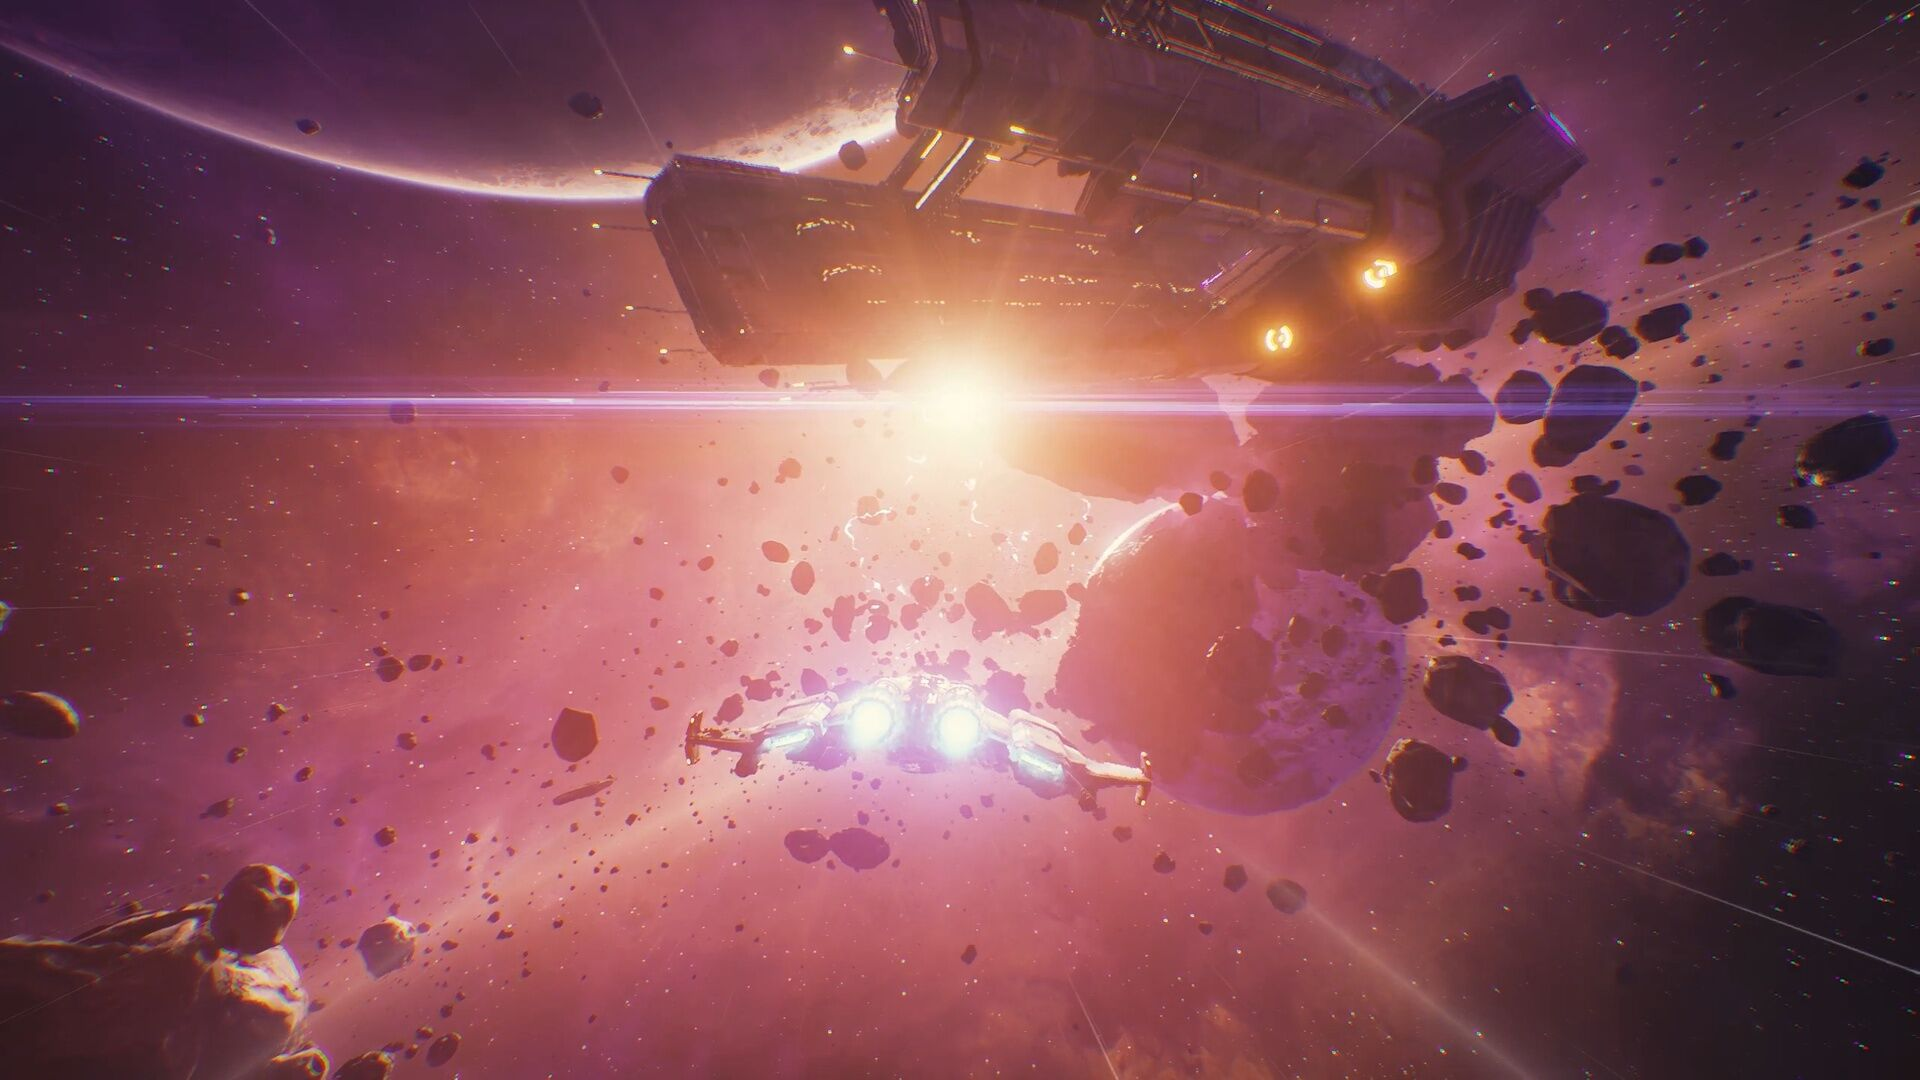 First Look: 'Everspace' is a Stunning VR Space Shooter That Scratches My Freespace Itch